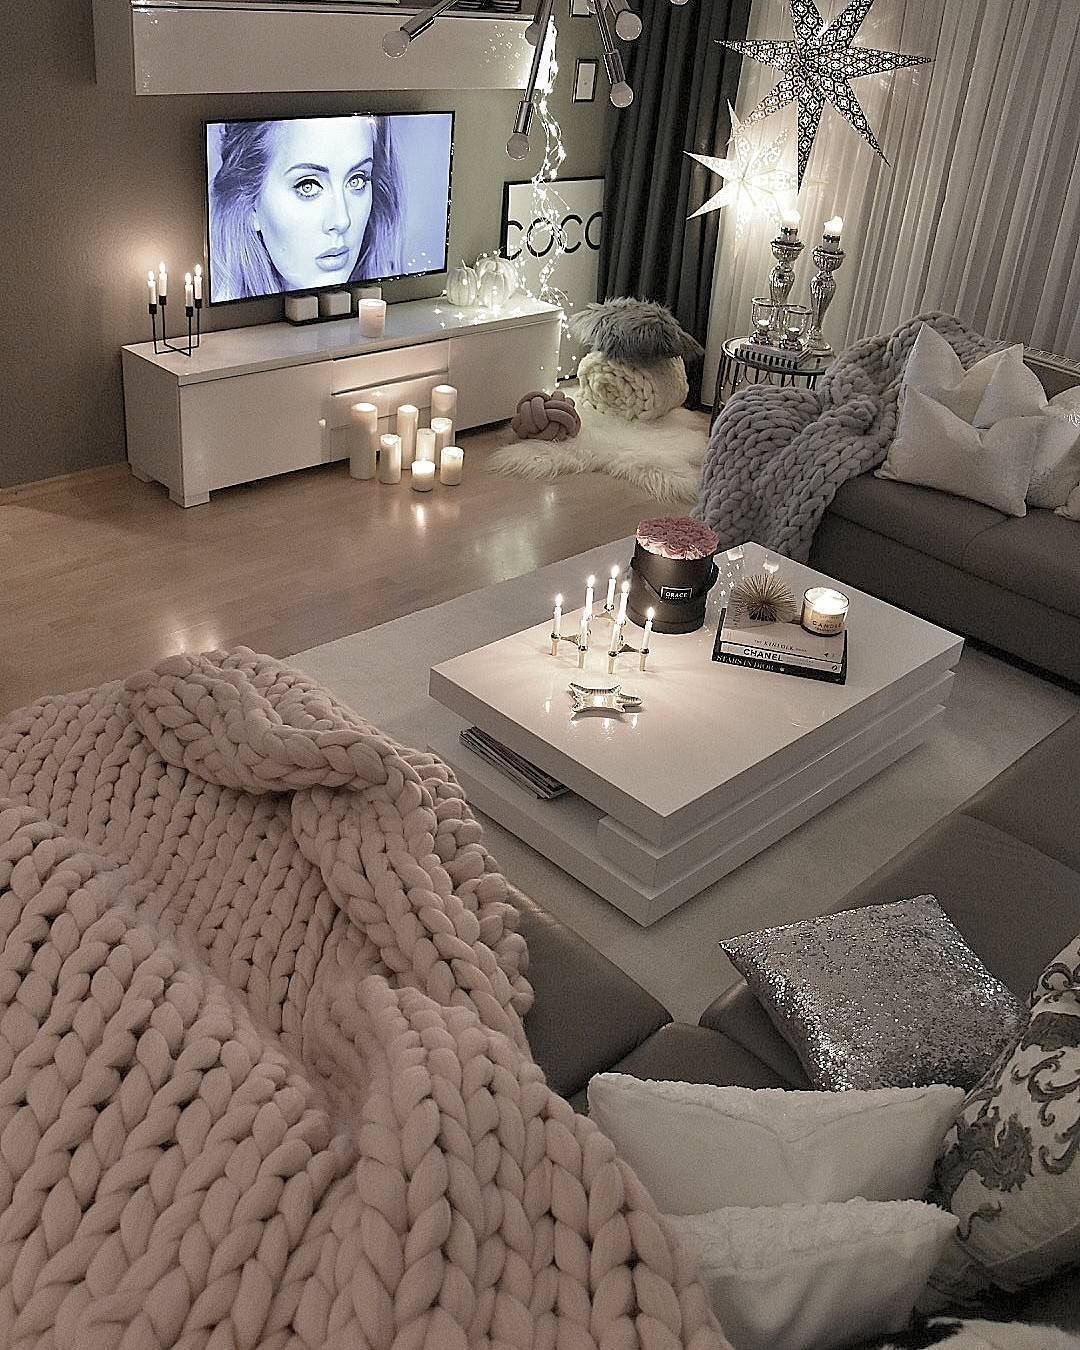 Pin by Gkendiston on Интерьер  Living room decor on a budget